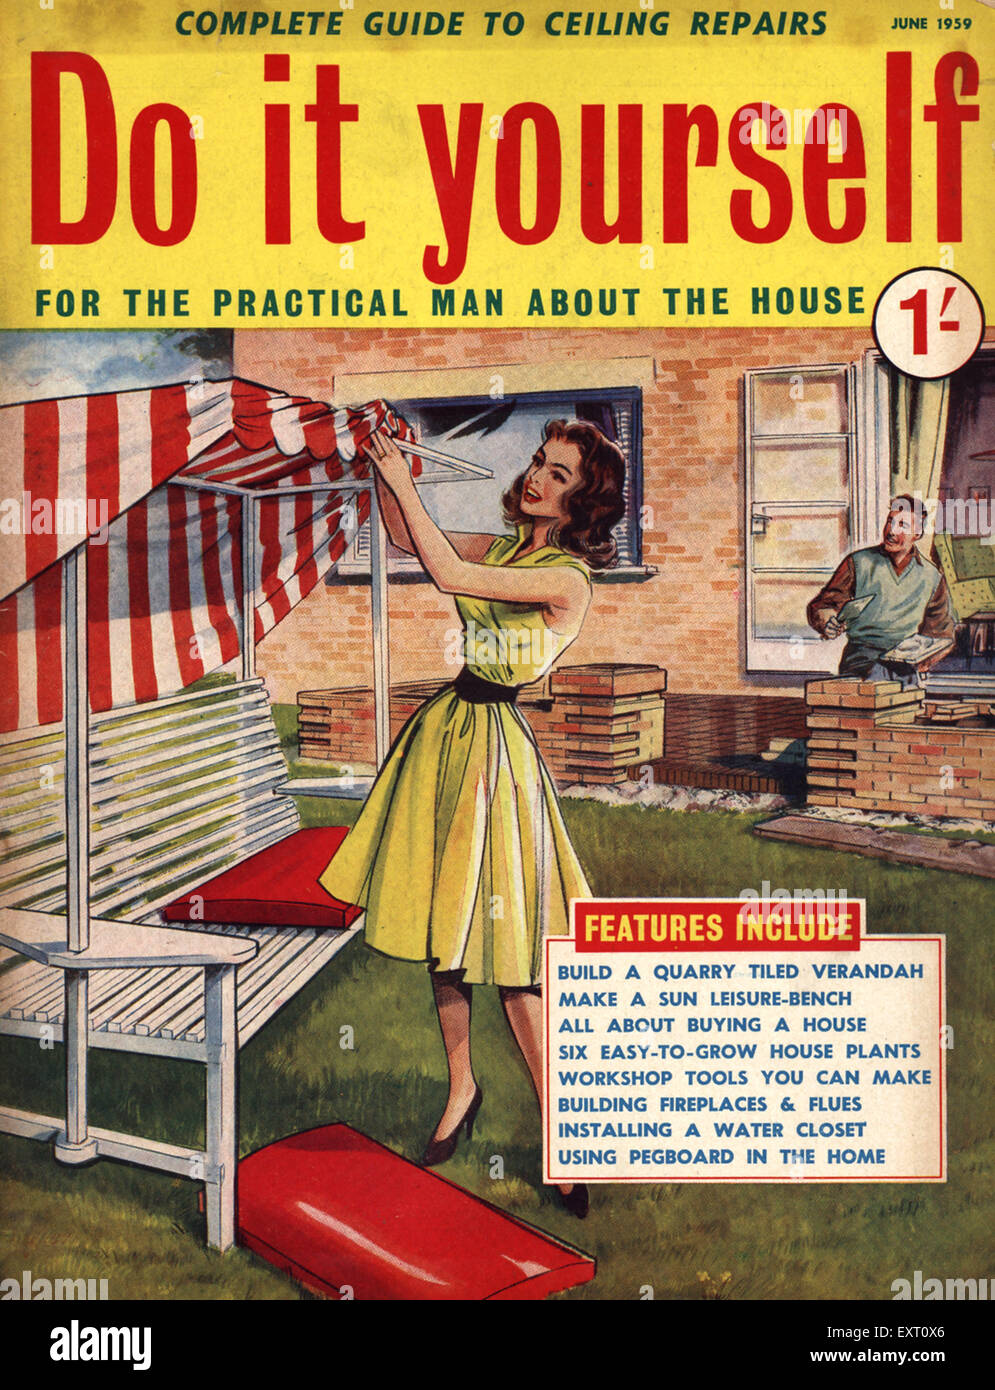 1950s uk do it yourself magazine cover stock photo royalty free image 85350110 alamy. Black Bedroom Furniture Sets. Home Design Ideas